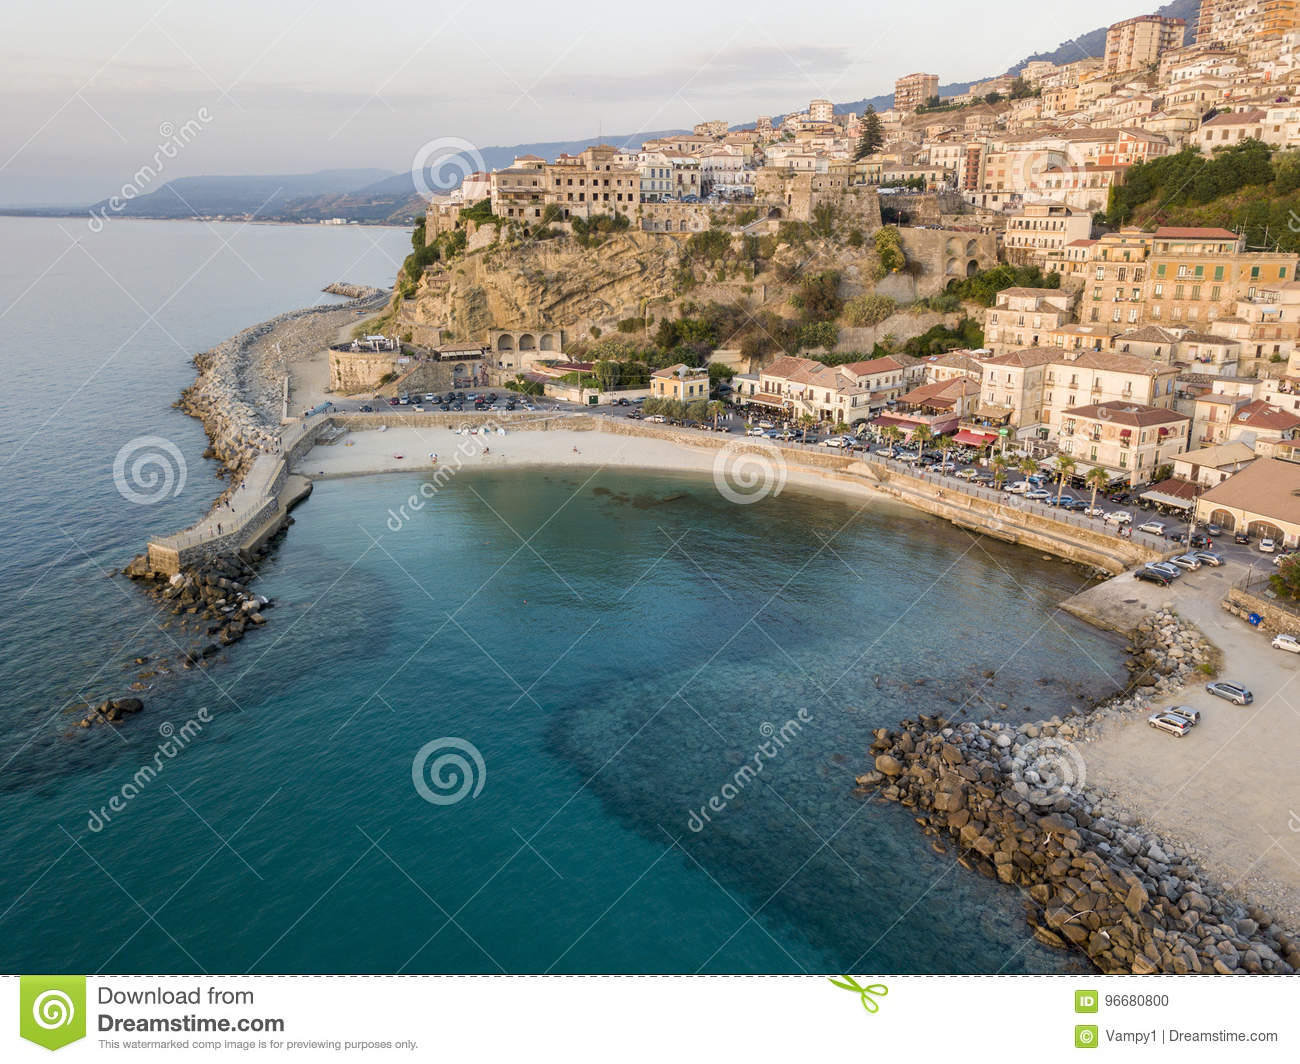 Aerial view of Pizzo Calabro, pier, castle, Calabria, tourism Italy. Panoramic view of the small town of Pizzo Calabro by the sea